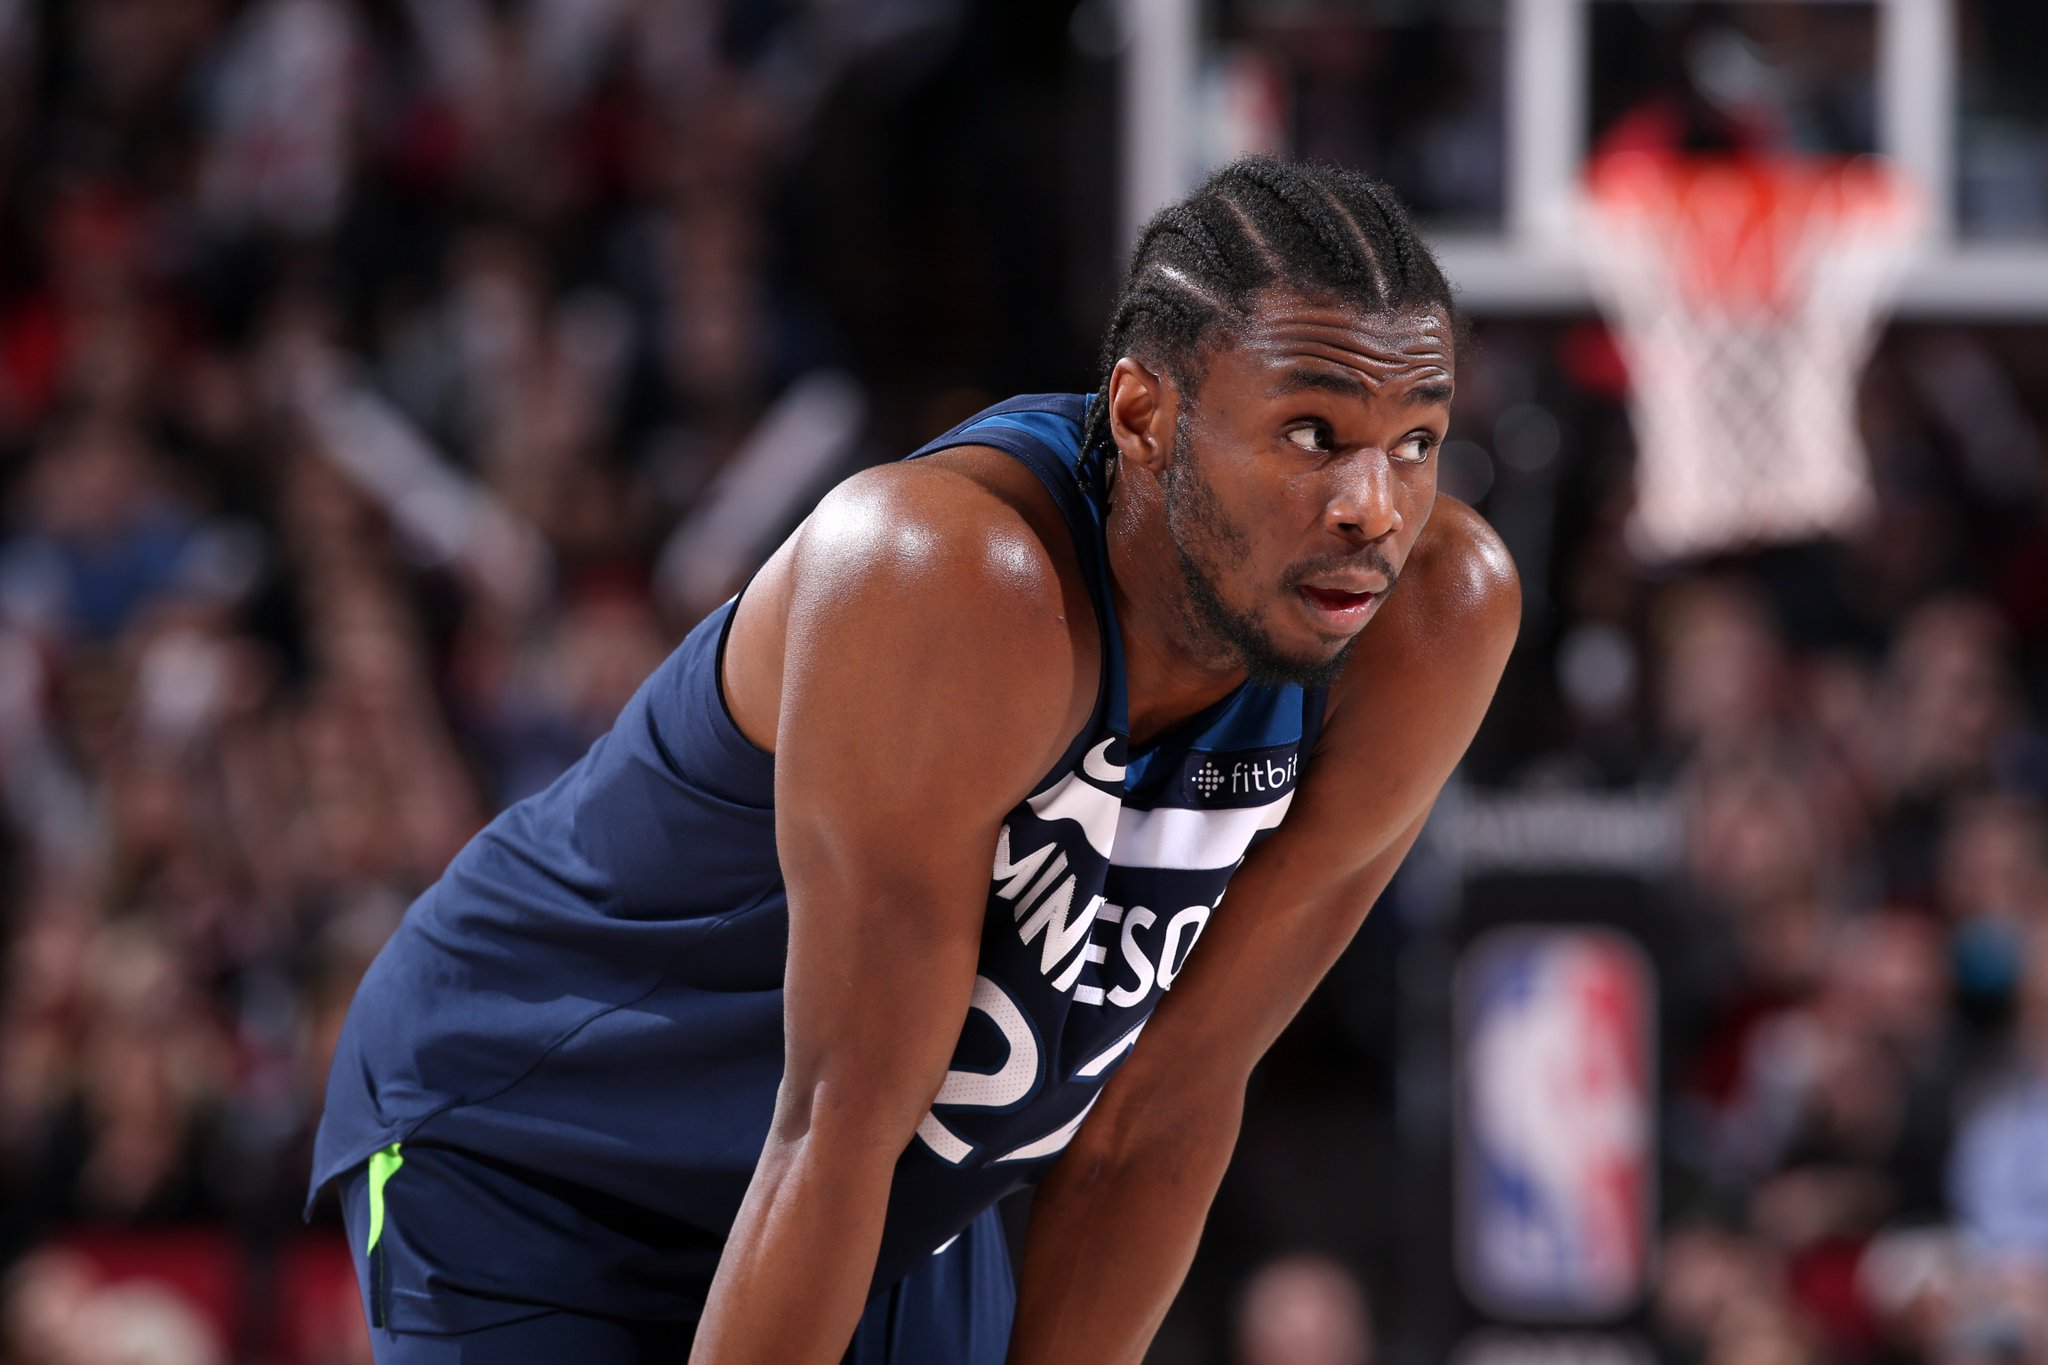 Andrew Wiggins unhappy with role behind KAT and Jimmy Butler, per @DWolfsonKSTP https://t.co/FabQ3cX3tJ https://t.co/z92M1StLAH